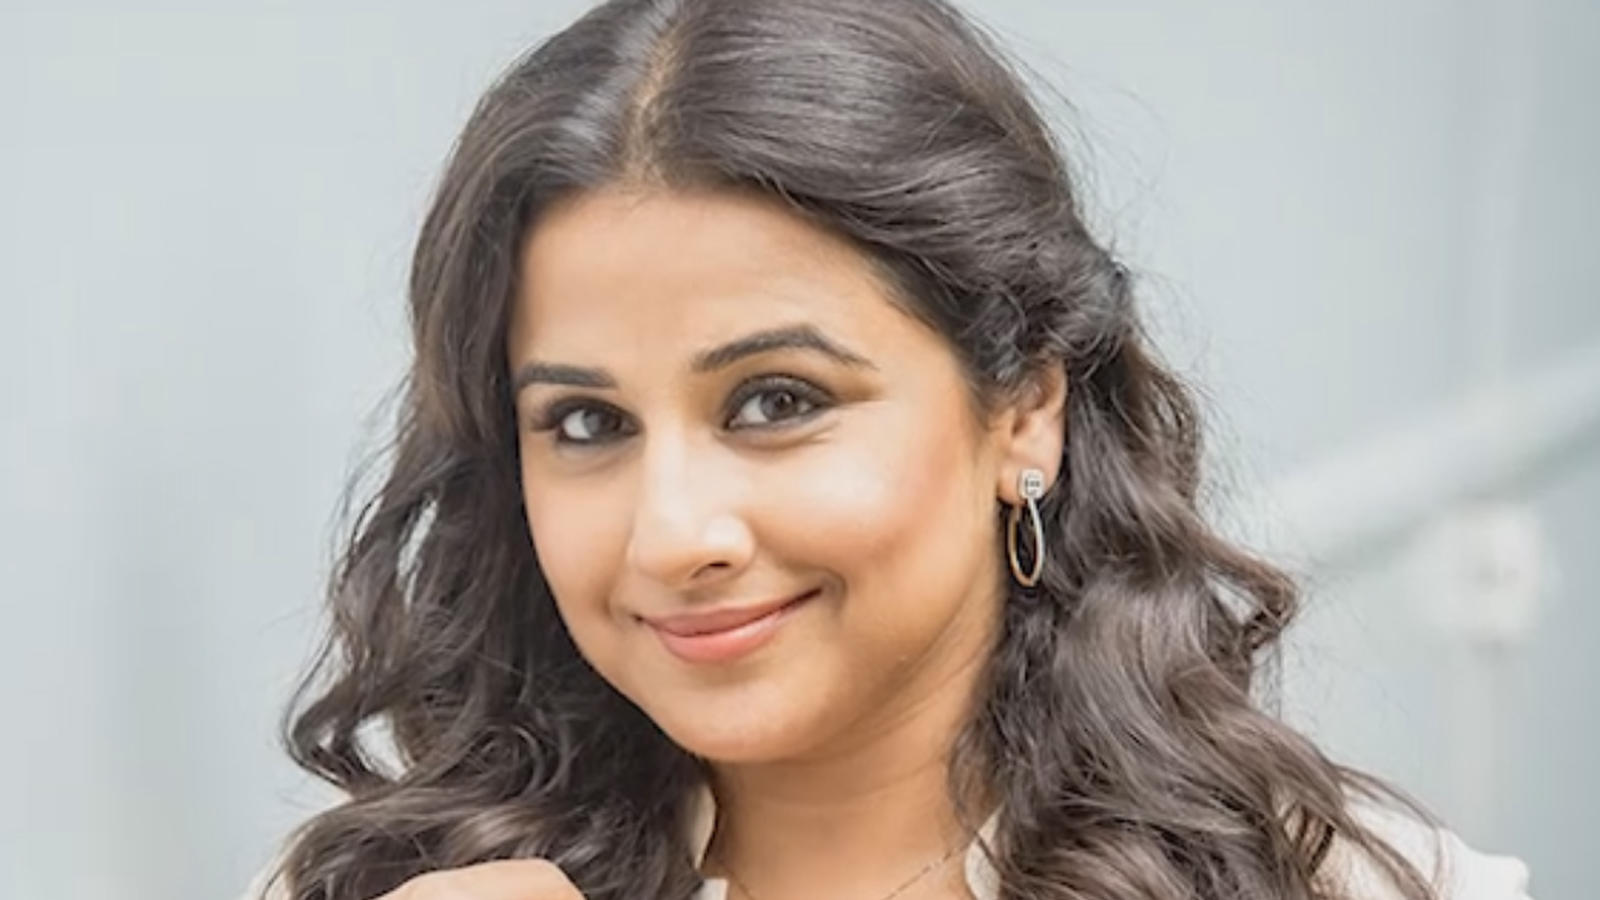 Why Vidya Balan is excited about 'Mission Mangal'